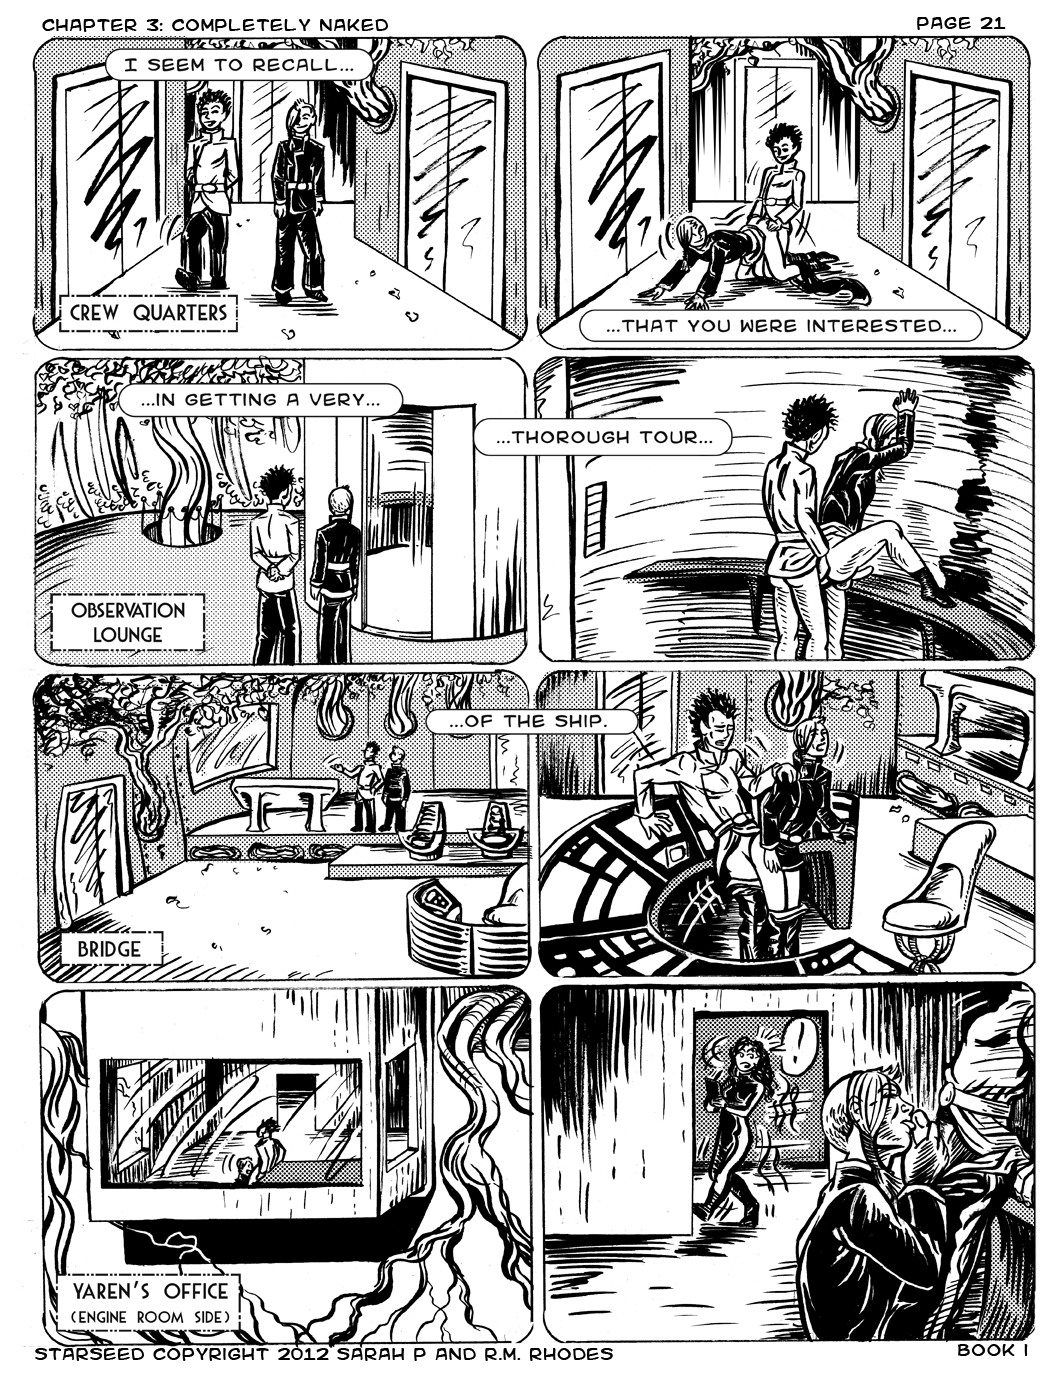 Book1 Page21